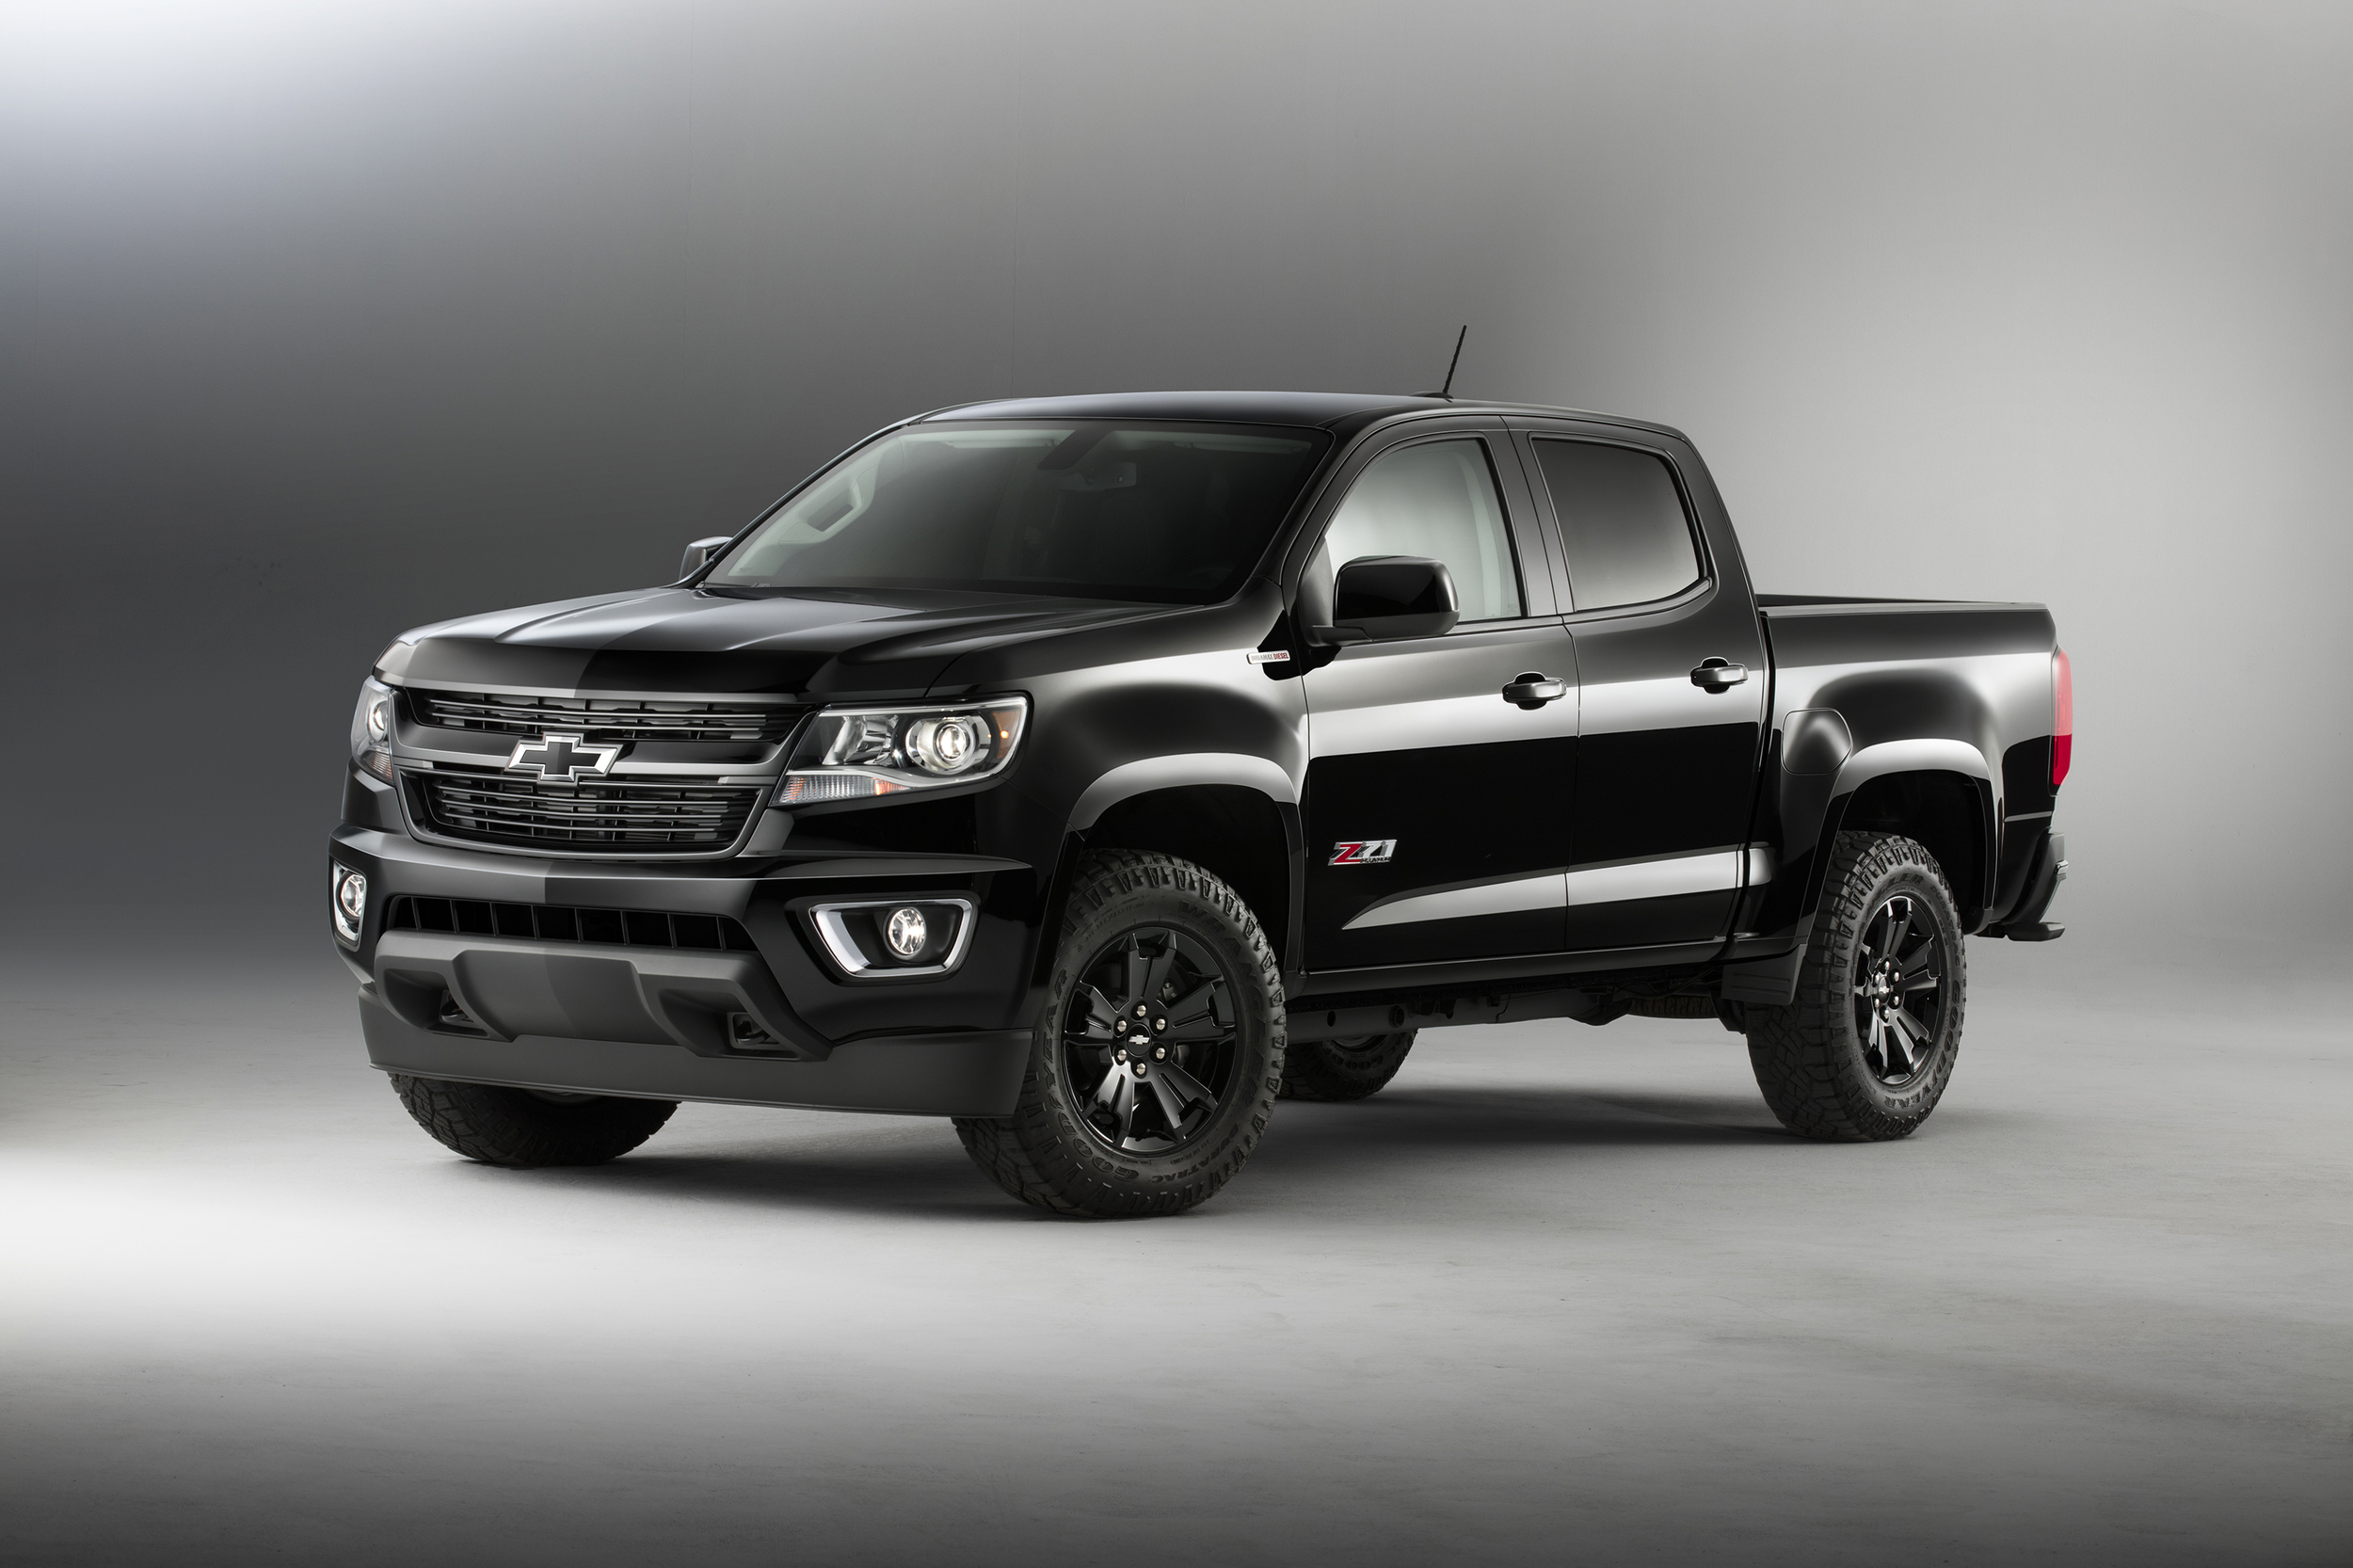 trend sale reaper silverado truck front for prevnext reviews inside the view chevrolet story